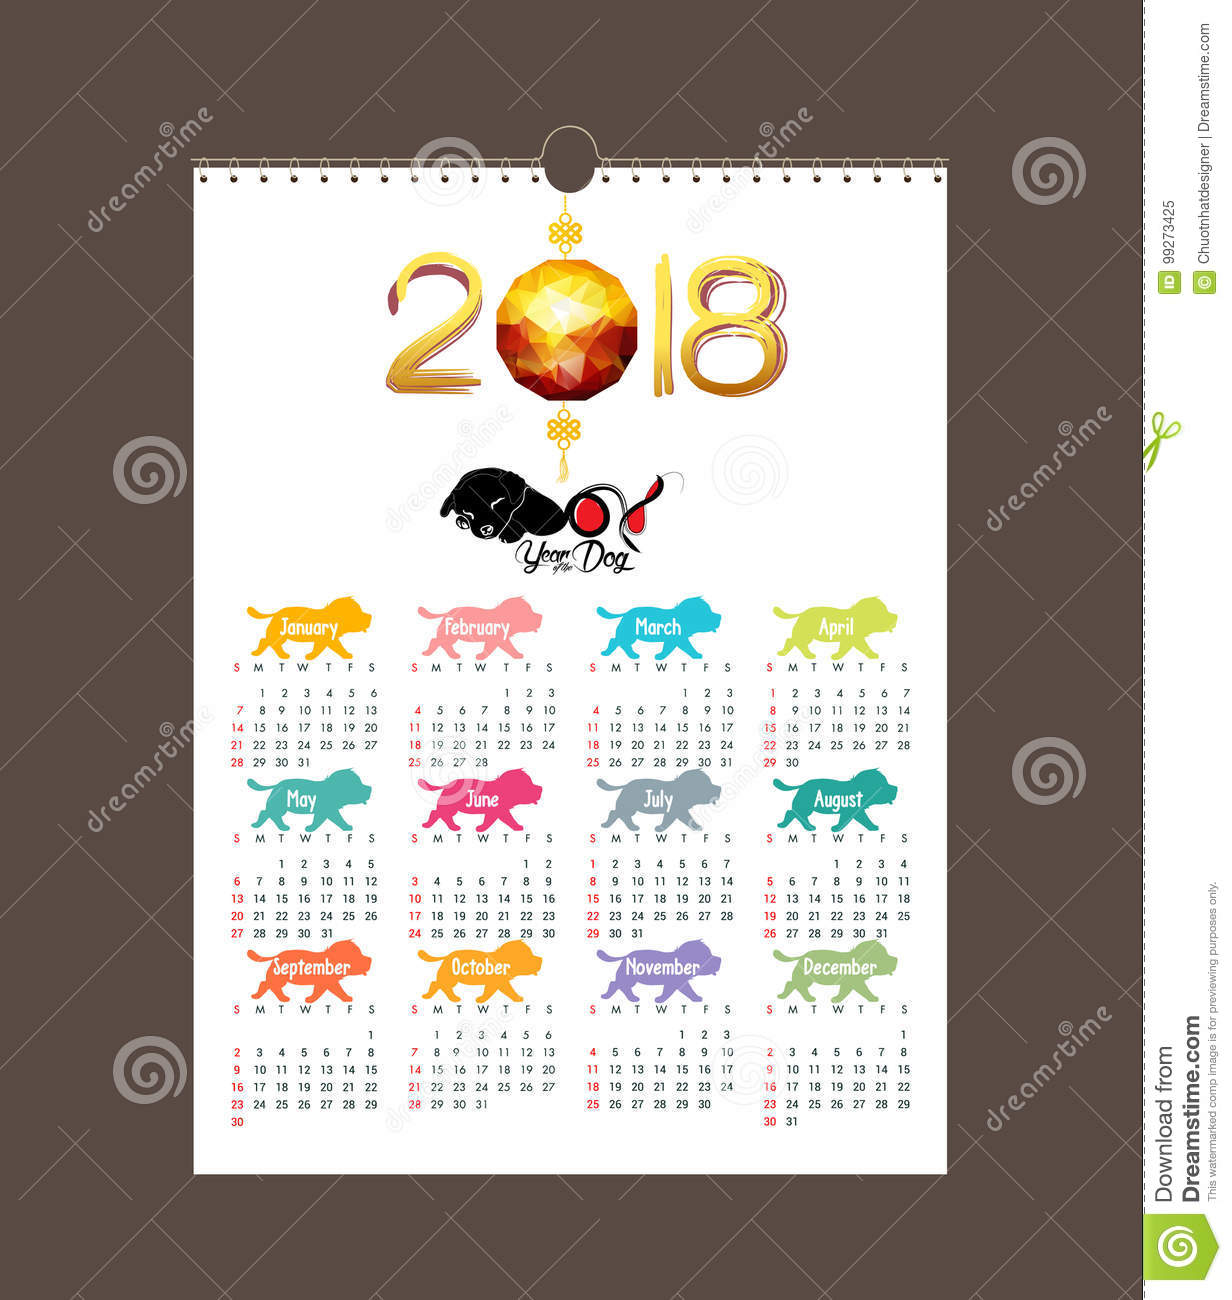 Calendar 2018 Design Chinese New Year The Year Of The Dog